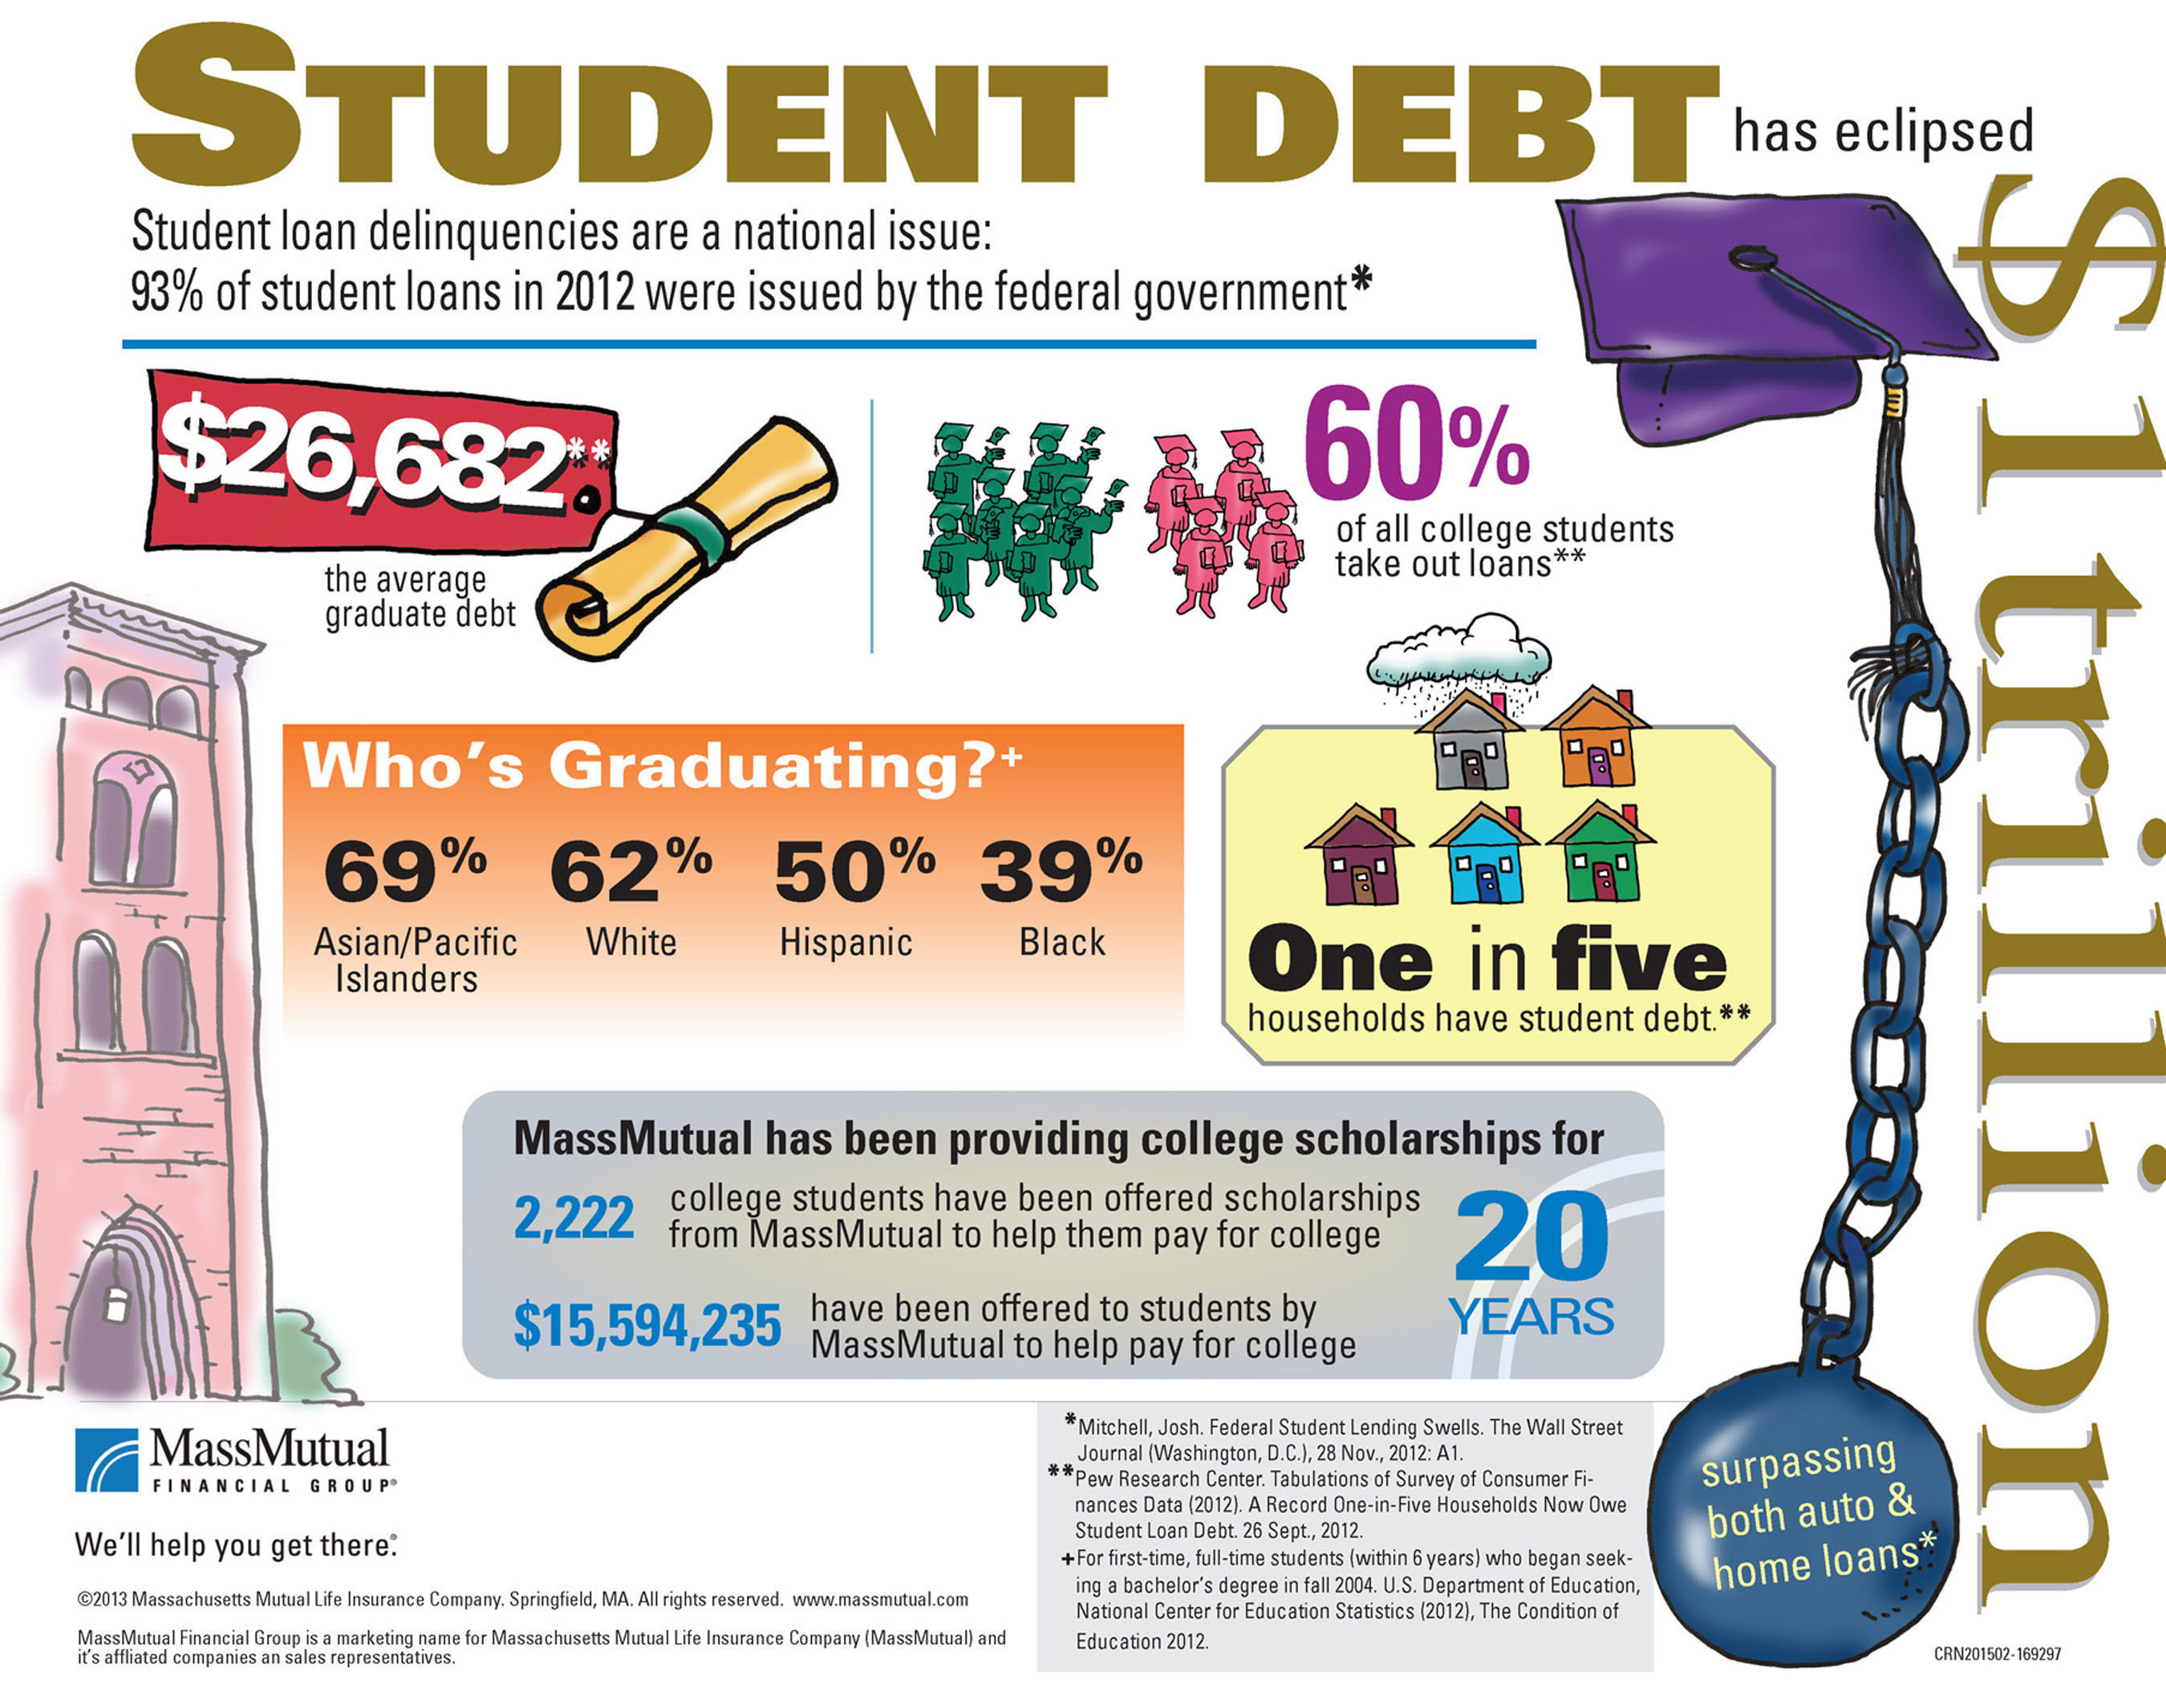 Students must plan ahead how they intend to finance their education during their time at college and after completing. As Student Debt Skyrockets to $1 Trillion, MassMutual ...